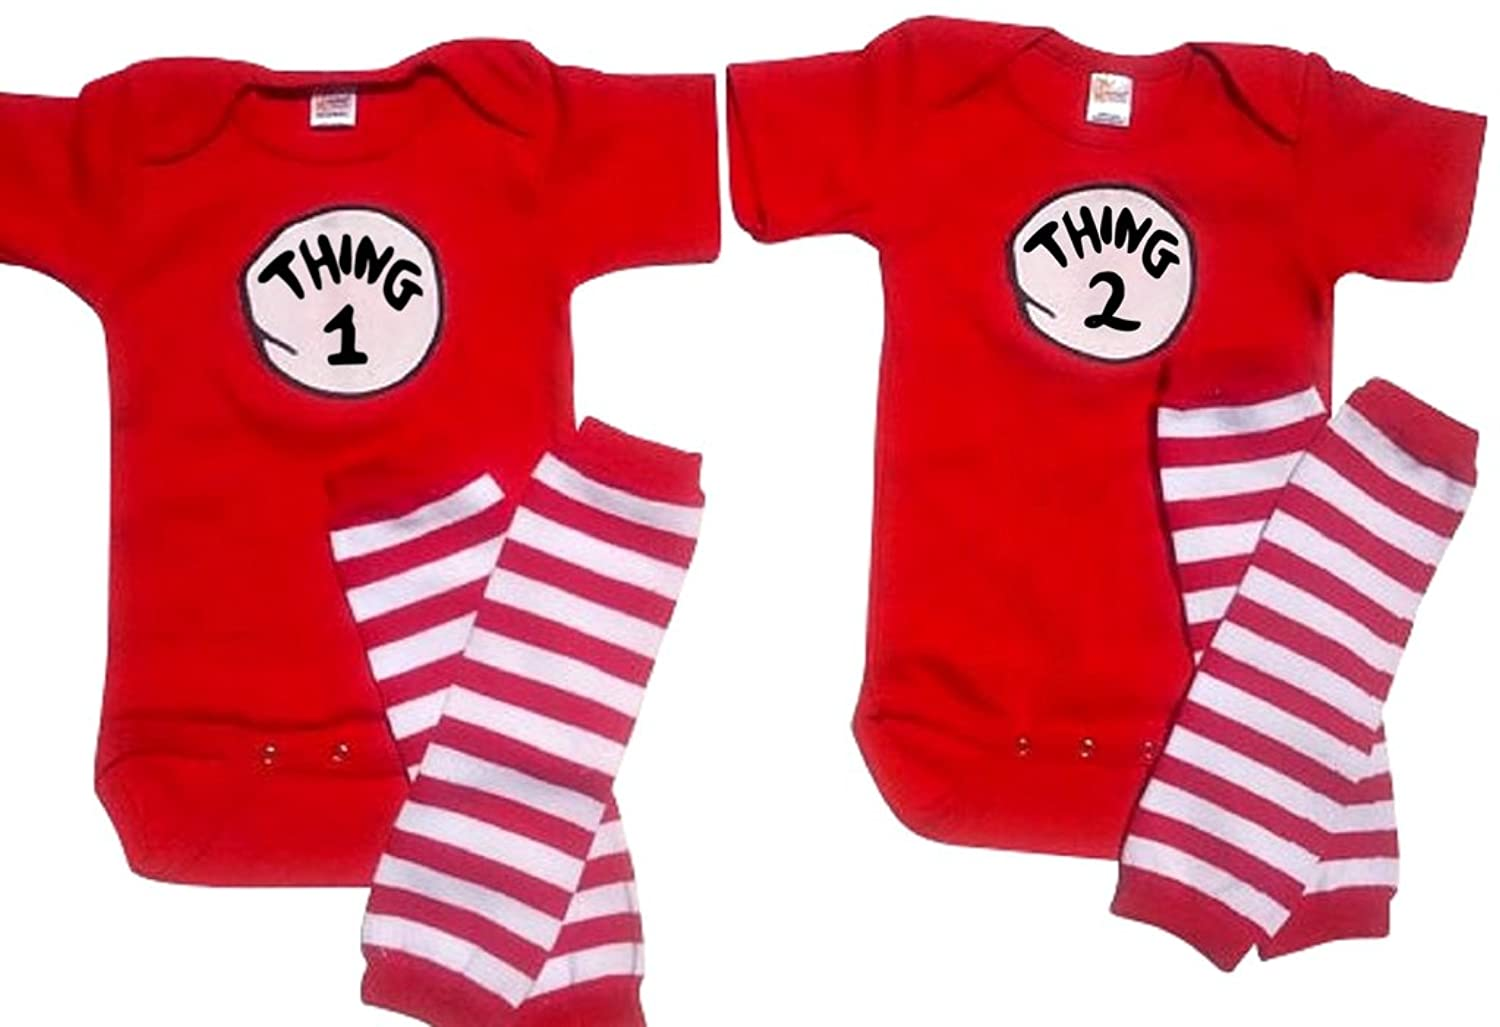 amazon com twin 1 twin 2 thing 1 thing 2 leggings perfect pairz